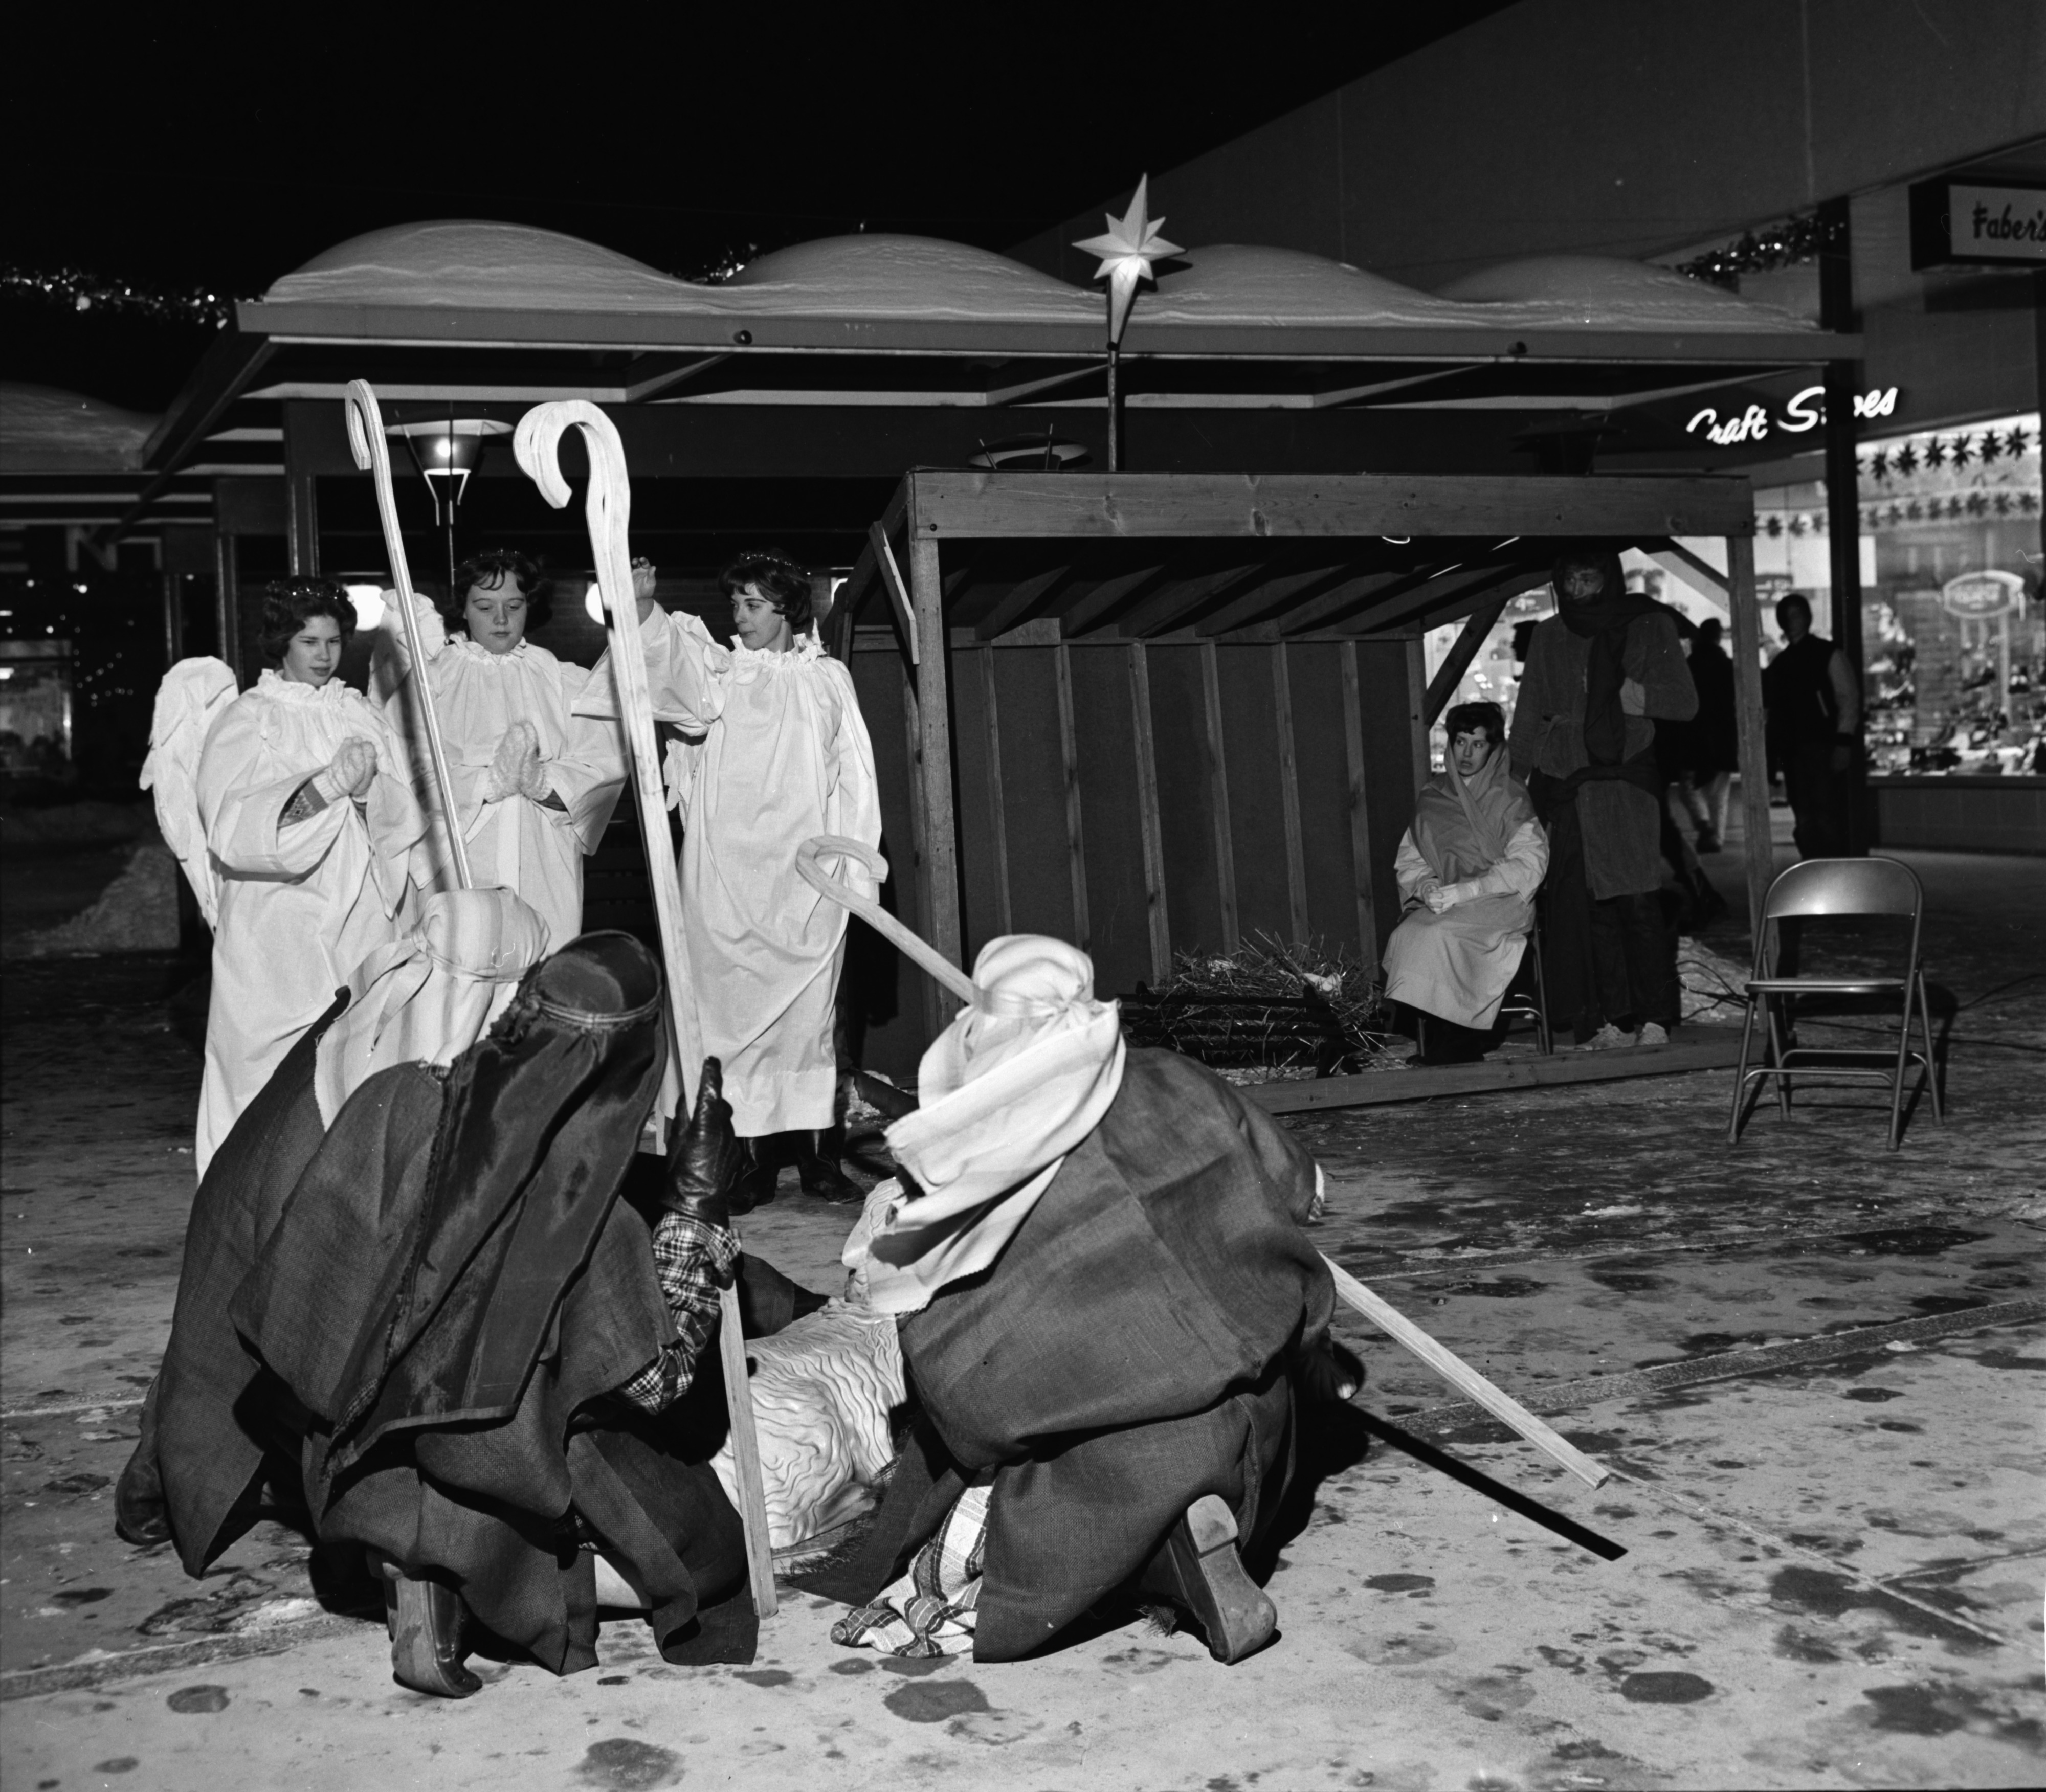 St. Paul's Lutheran Church Youth Group Stages Living Nativity Scene at Arborland, December 1963 image